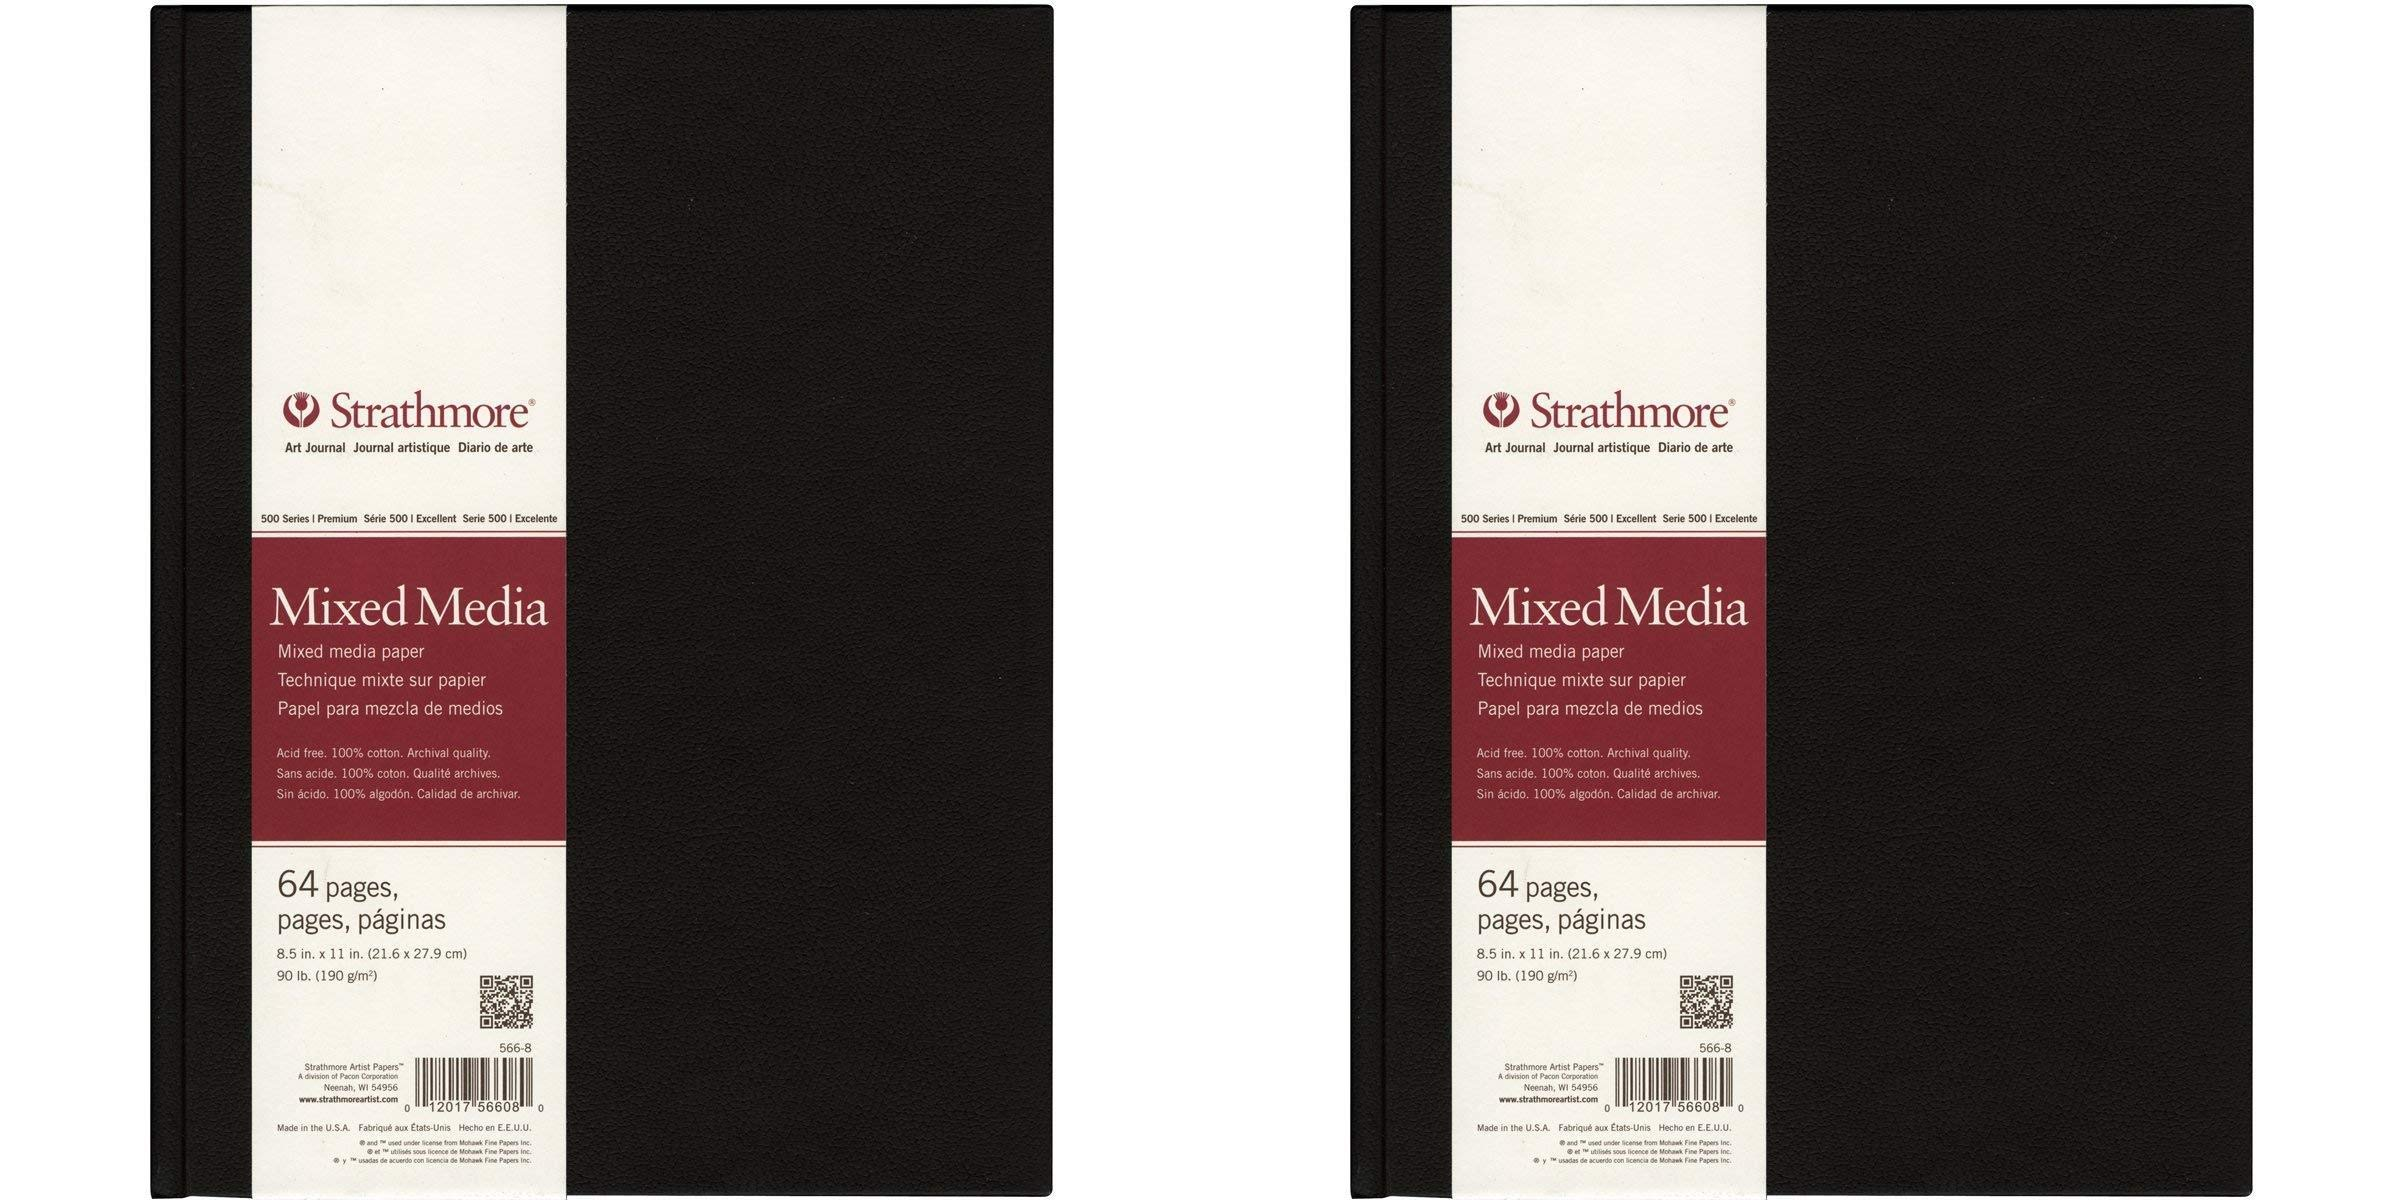 Strathmore 566-8 500 Series Hardbound Mixed Media Art Journal, 8.5''x11'' 32 Sheets Pack of 2 by Strathmore